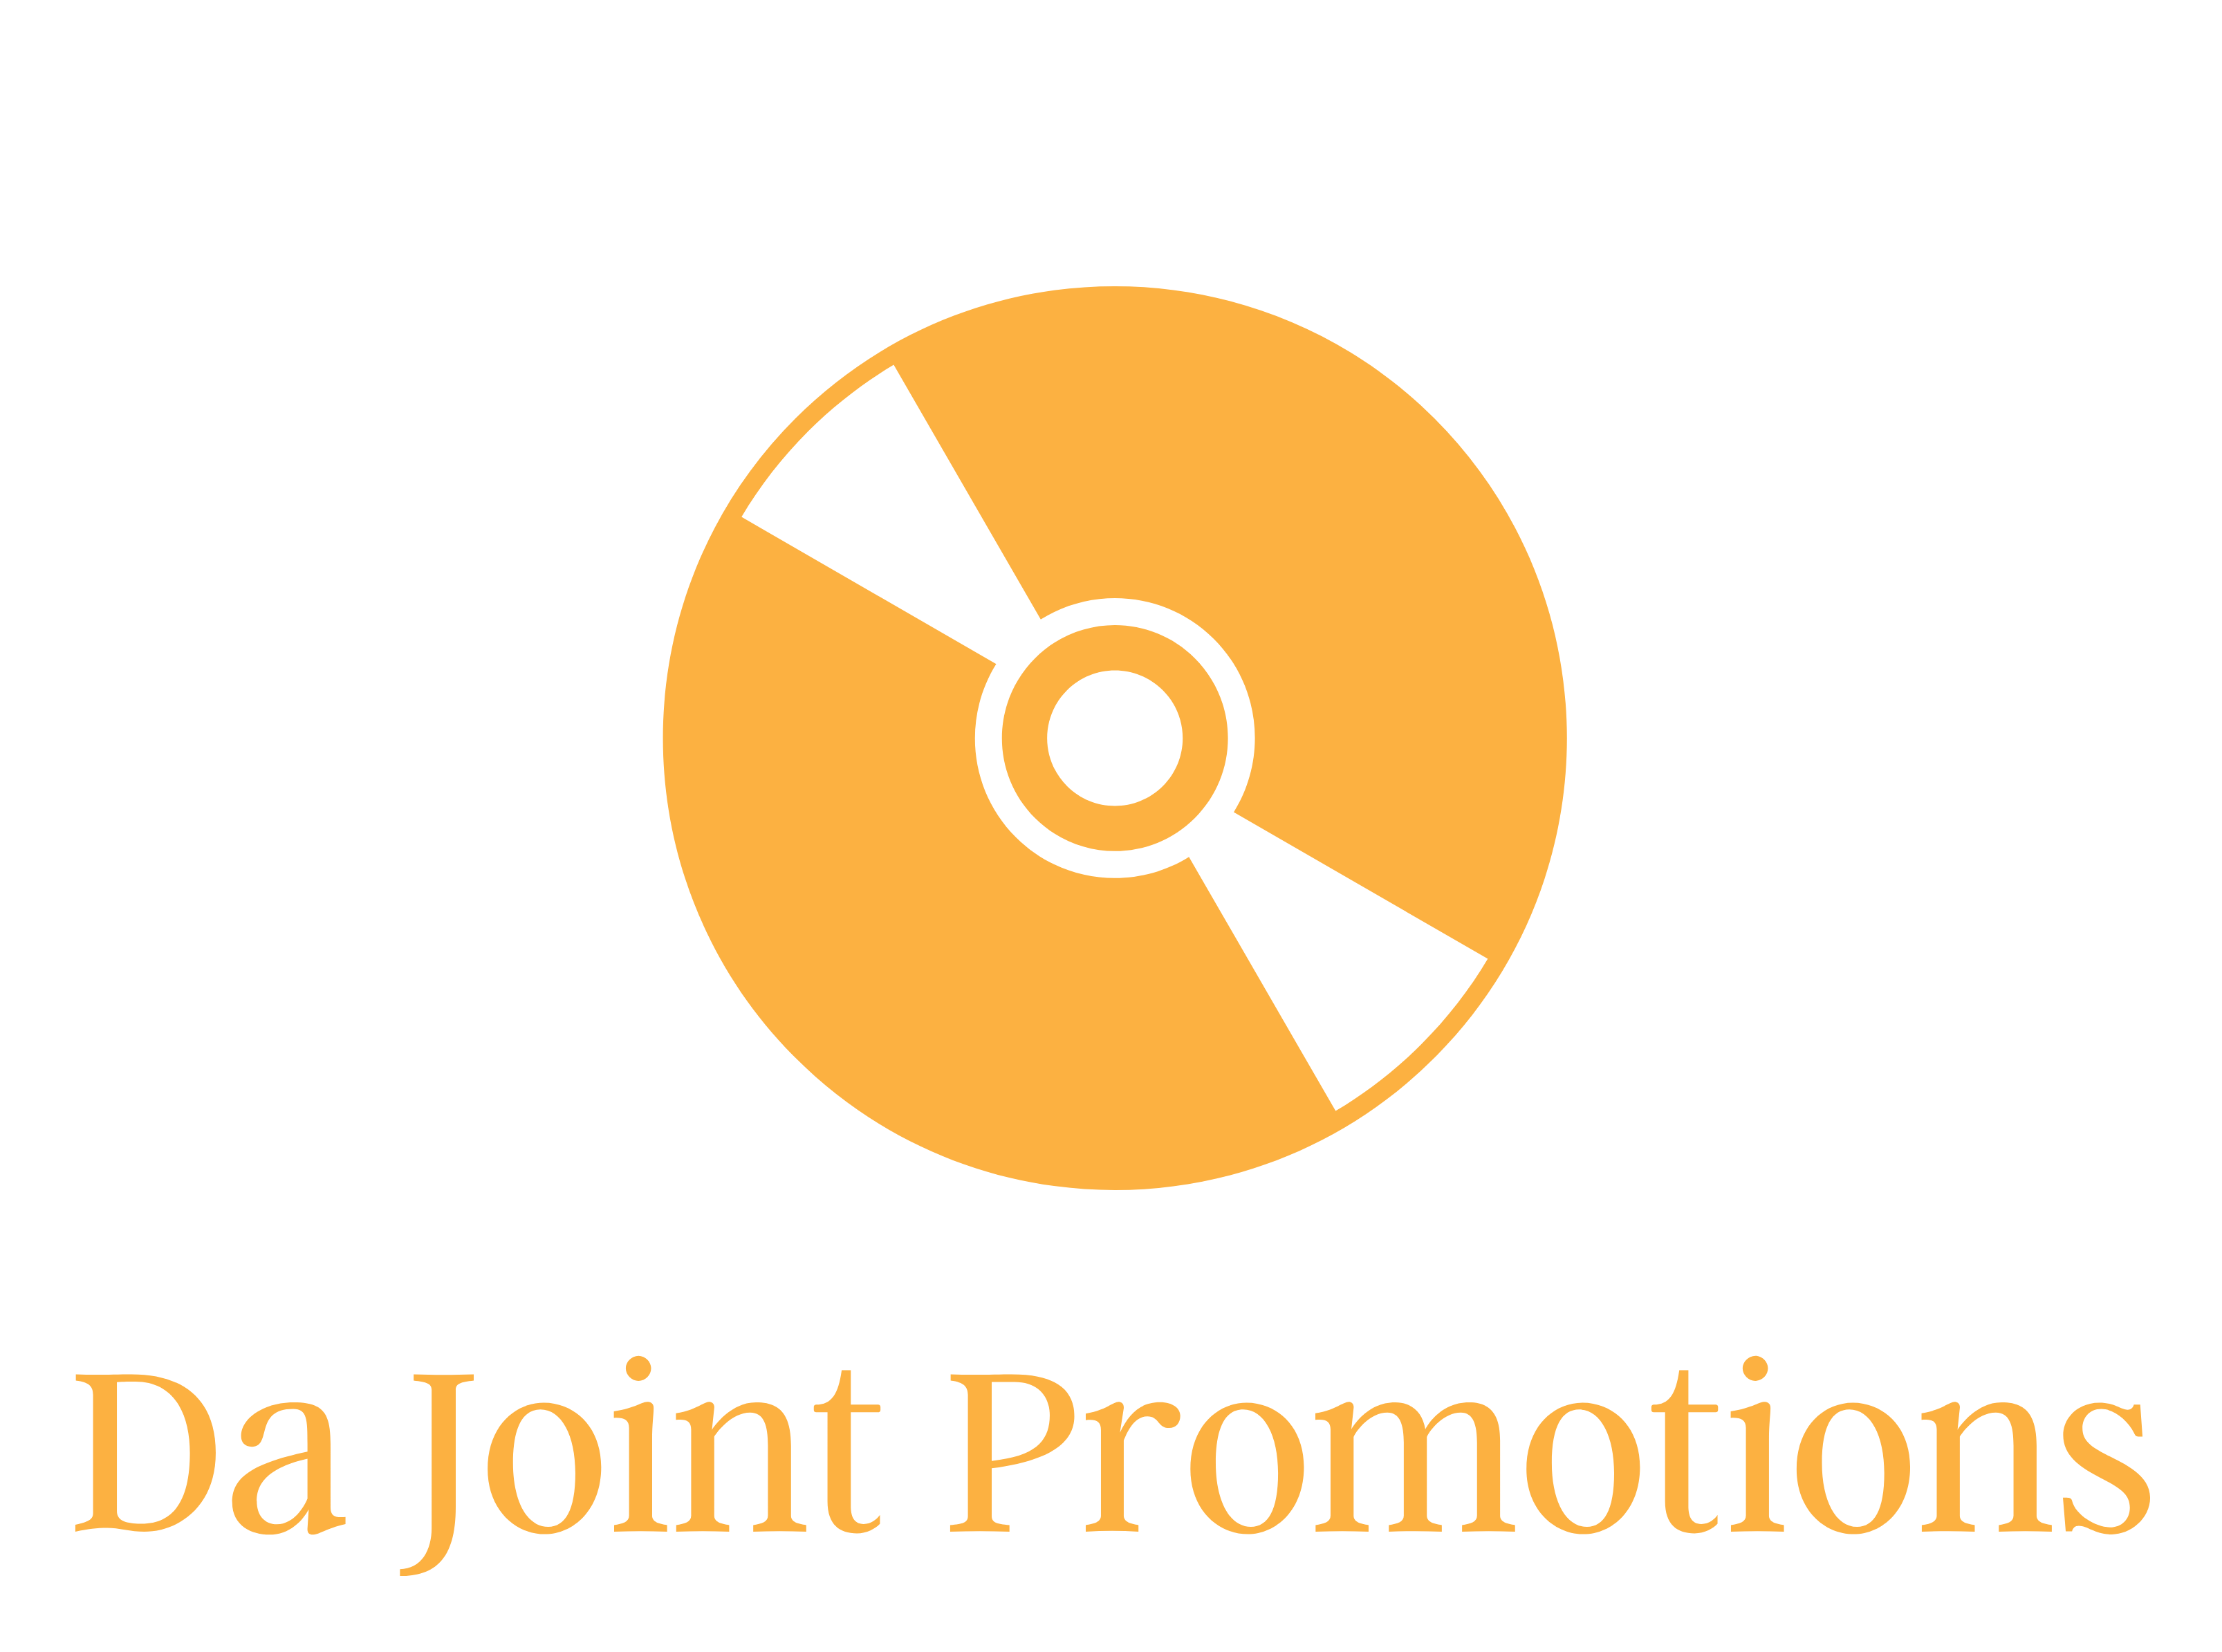 Da Joint Promotions Blog